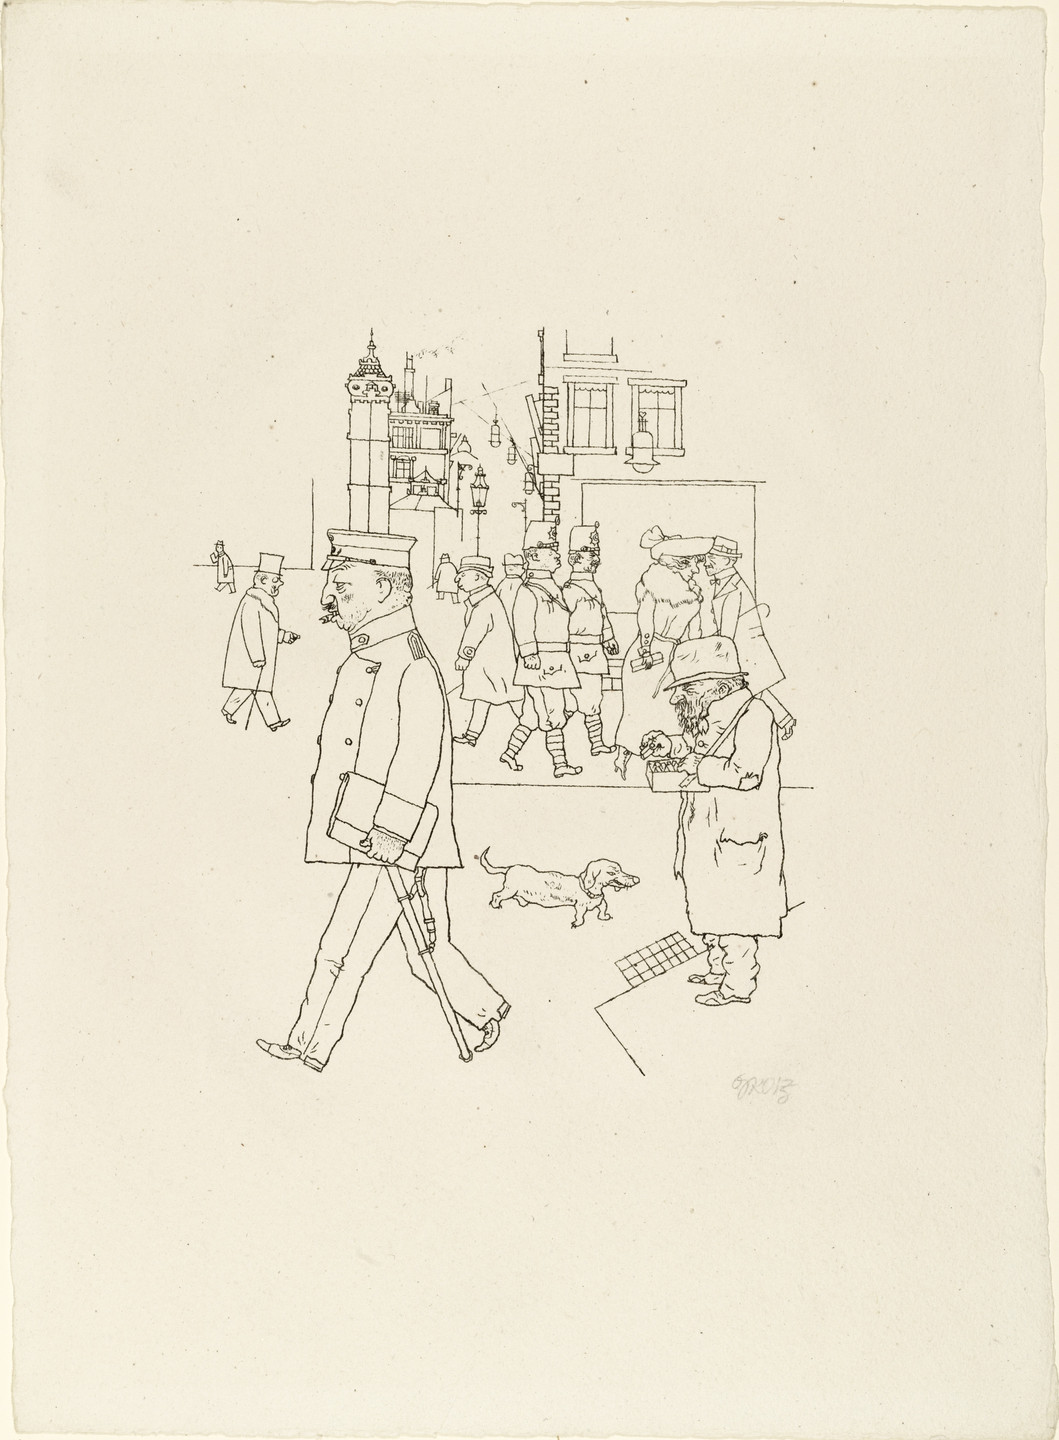 George Grosz. Matchseller and Patrol from In the Shadows (Im Schatten). c. 1920, published 1921